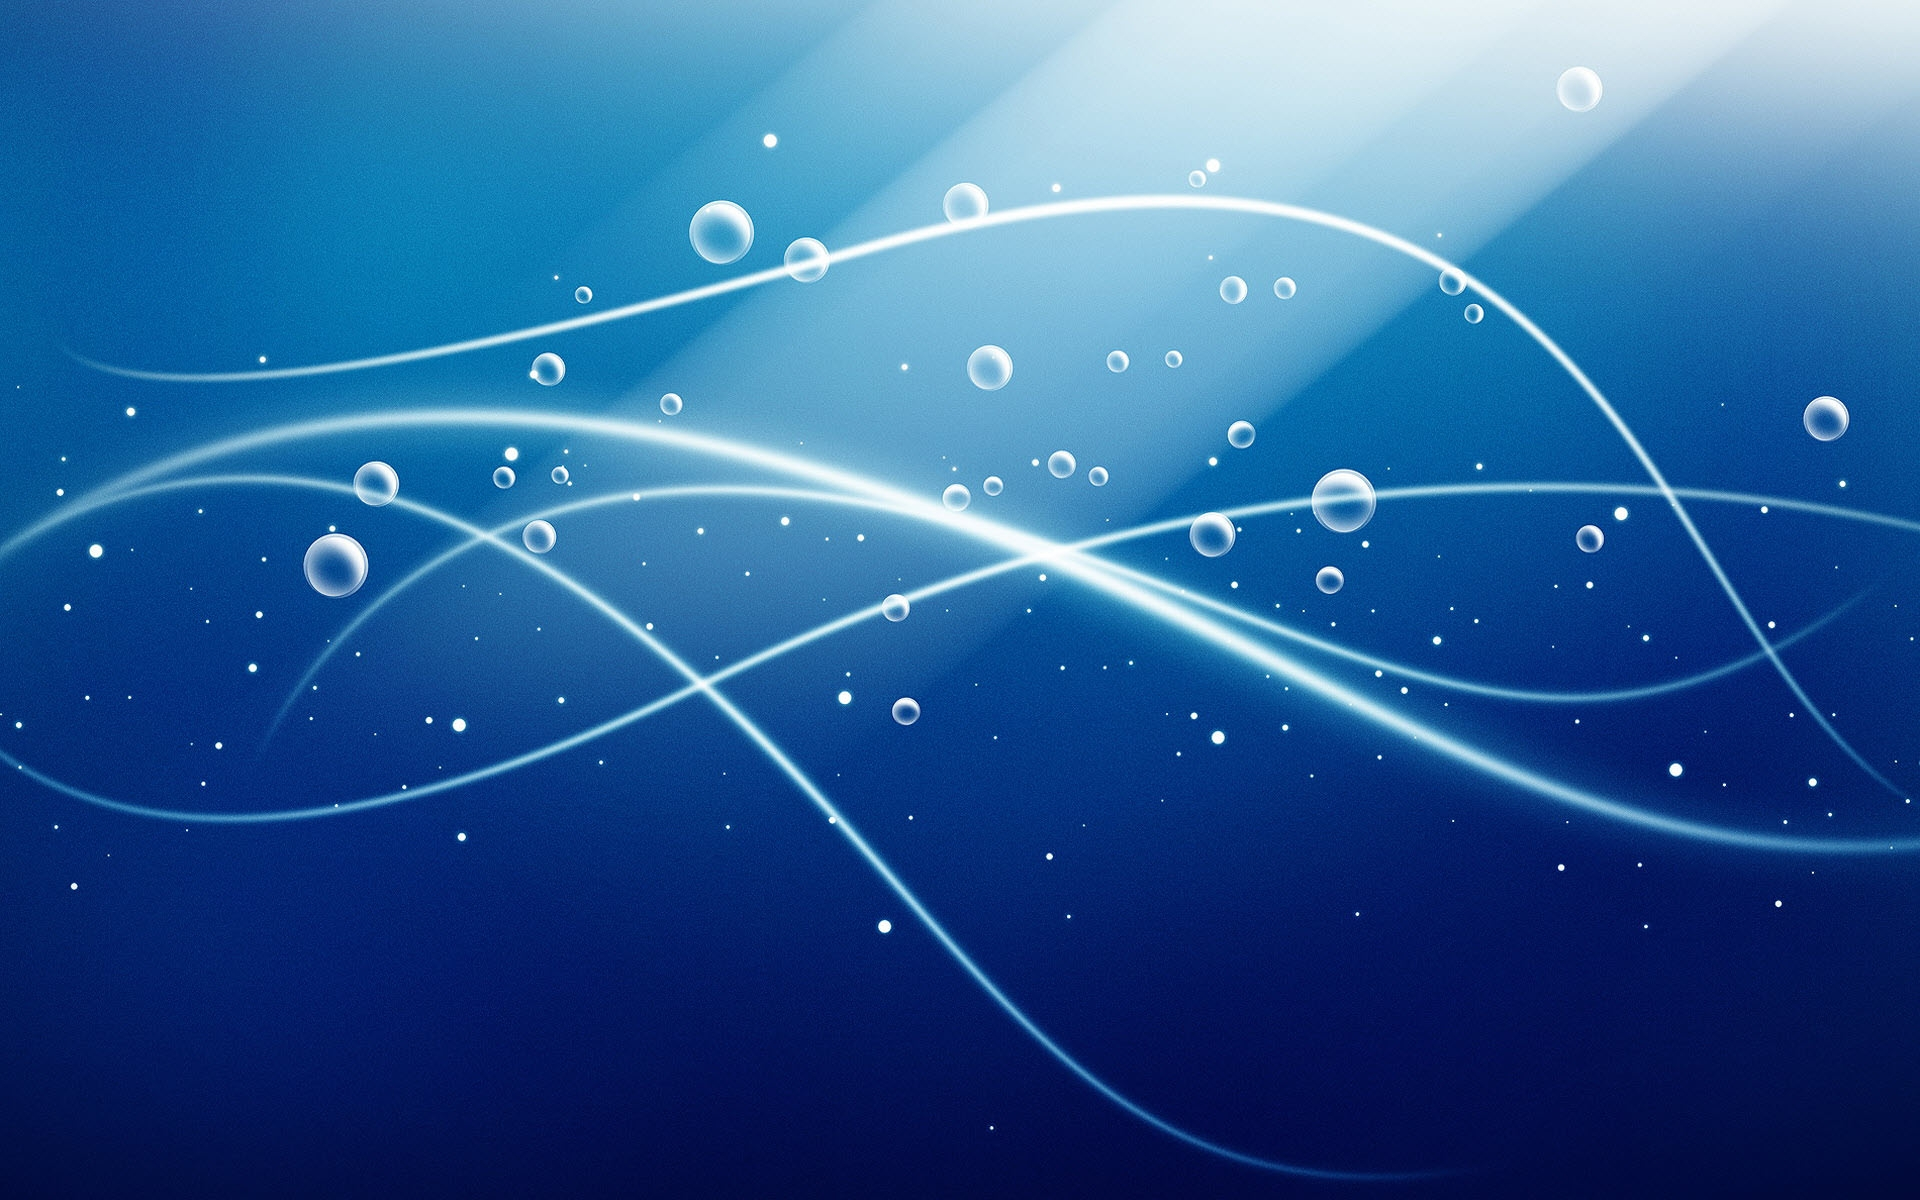 Blue Bubbles Waves Wallpaper